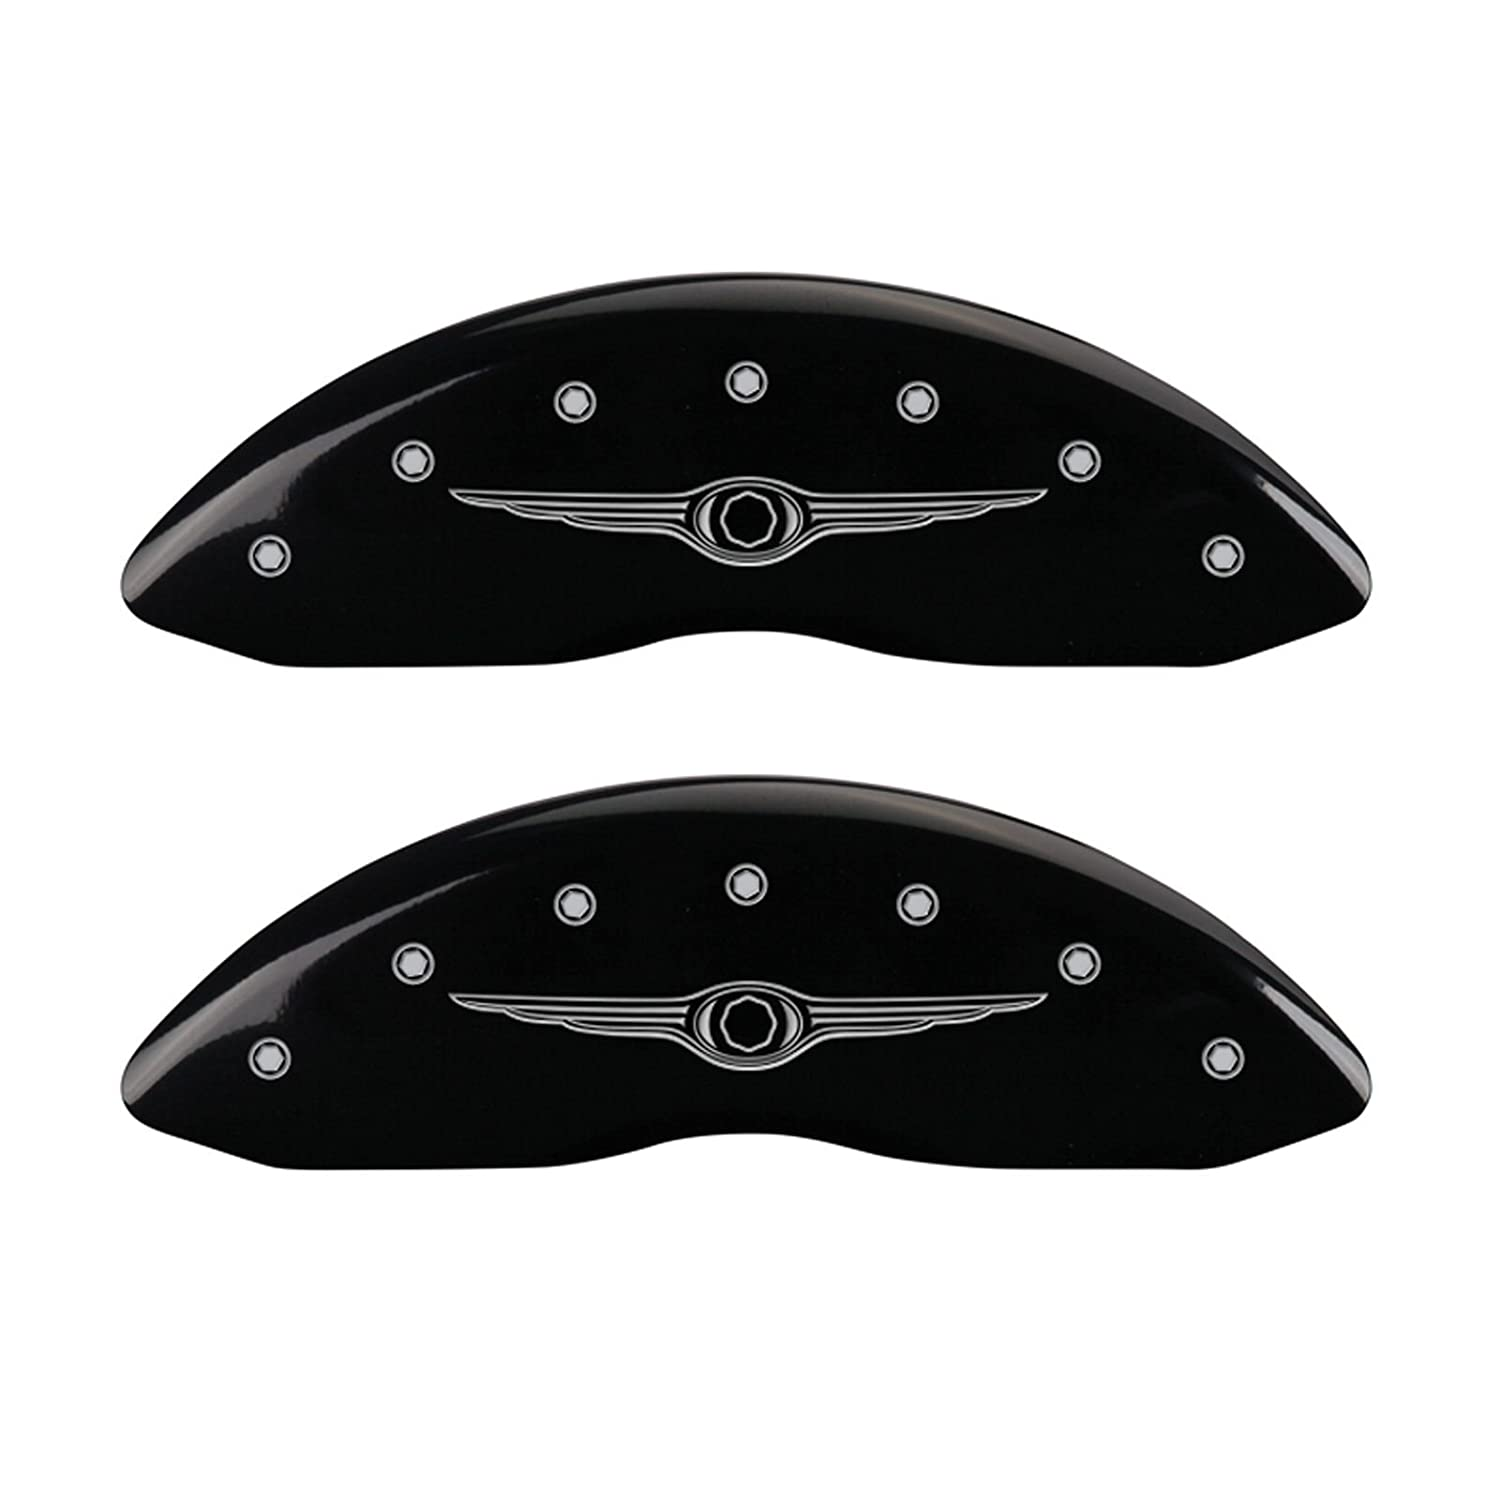 Set of 2 MGP Caliper Covers 10226FFRDBK Ford Oval Logo Type Caliper Cover with Black Powder Coat Finish and Silver Characters,